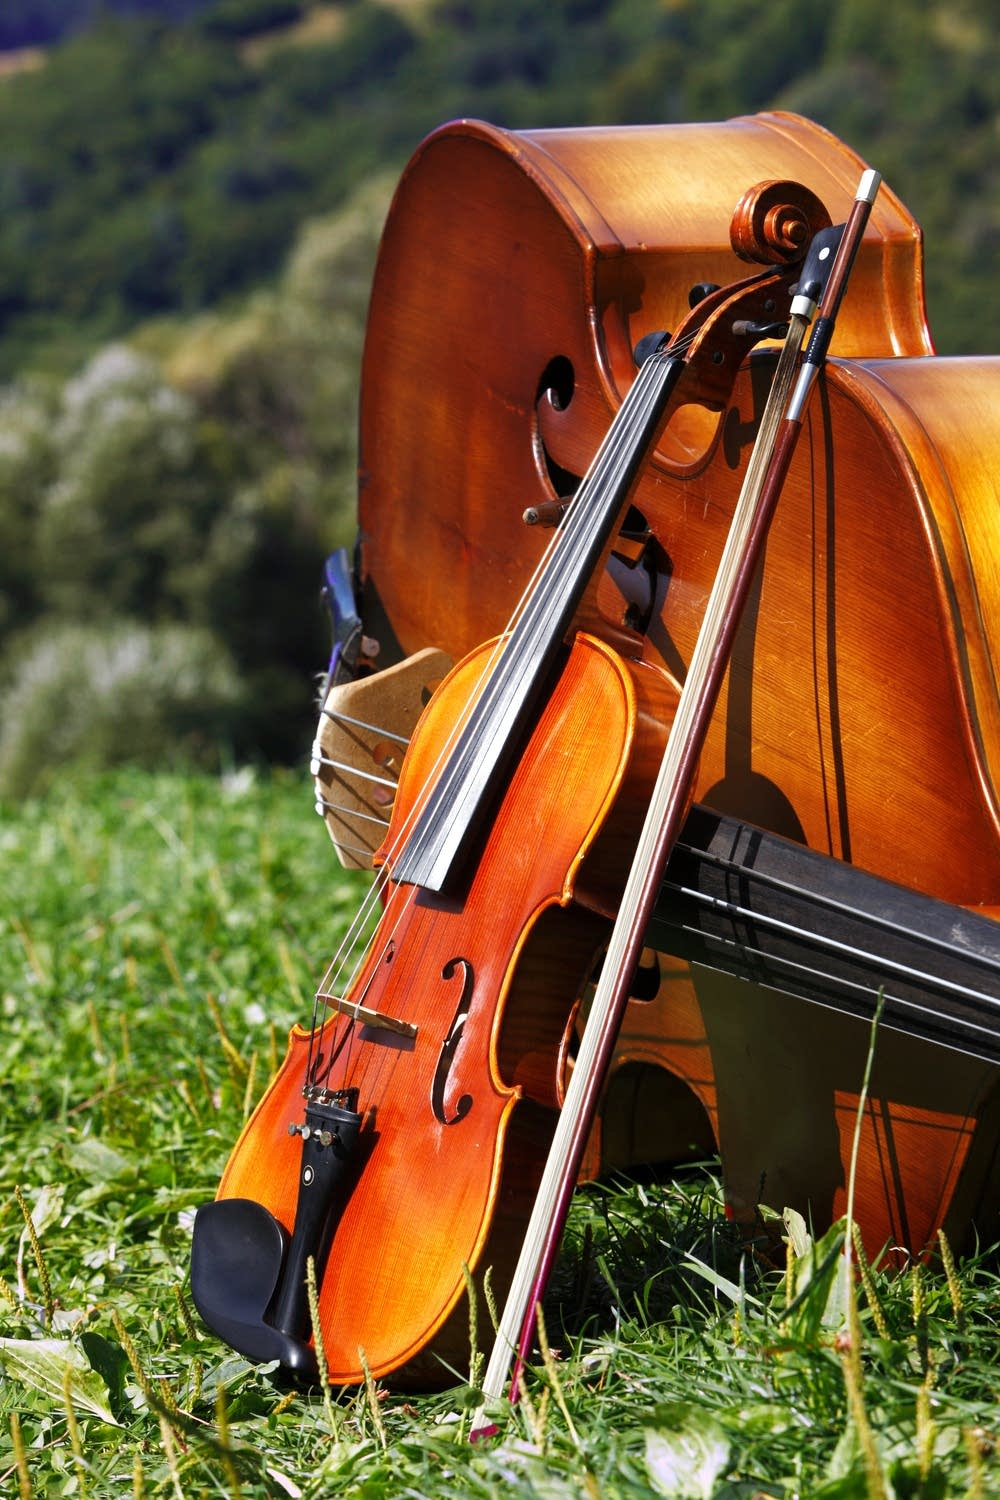 Violin and Cello